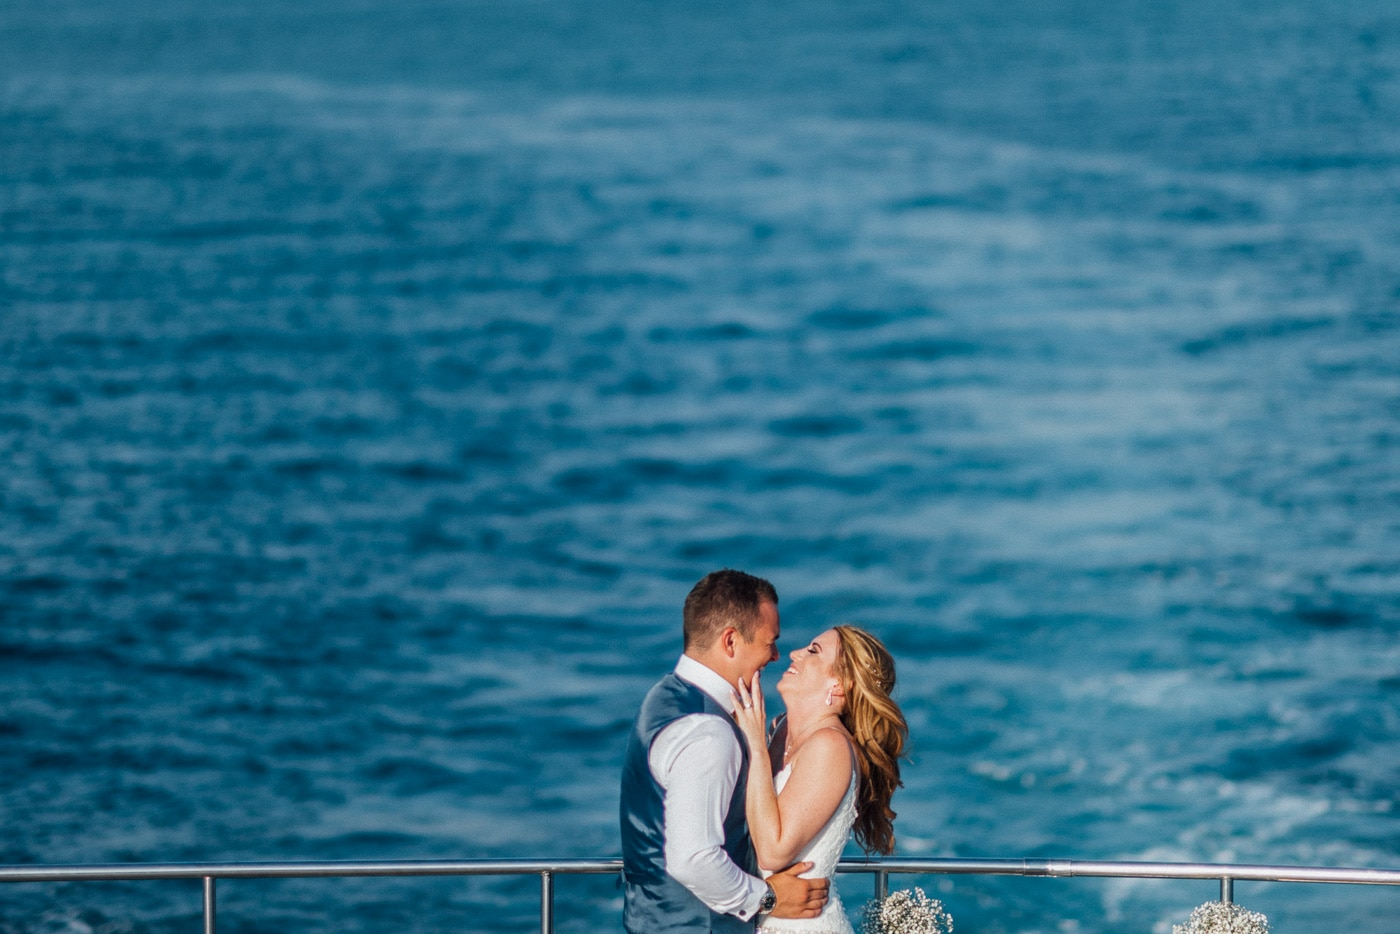 Lovely couple on the yacht and the blue sea, wedding photographer in Cyprus Alexandru Macelaru